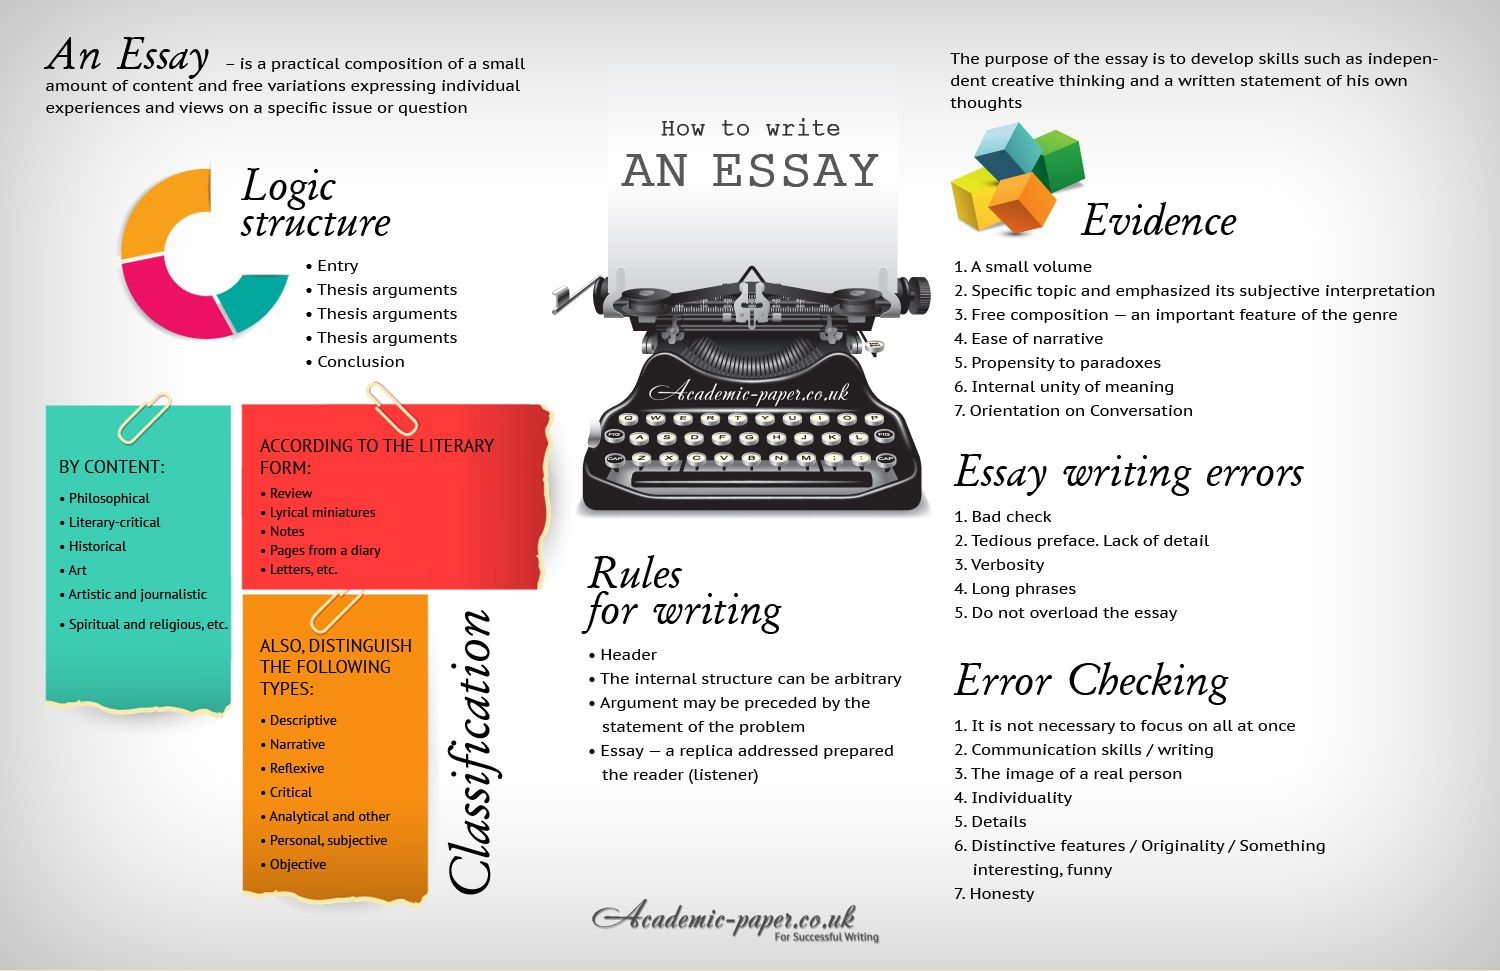 features of long essay Parts of an essay — traditionally, it has been taught that a formal essay consists of three parts: the introductory paragraph or introduction, the body paragraphs, and the concluding paragraph an essay does not need to be this simple, but it is a good starting point the introductory paragraph.